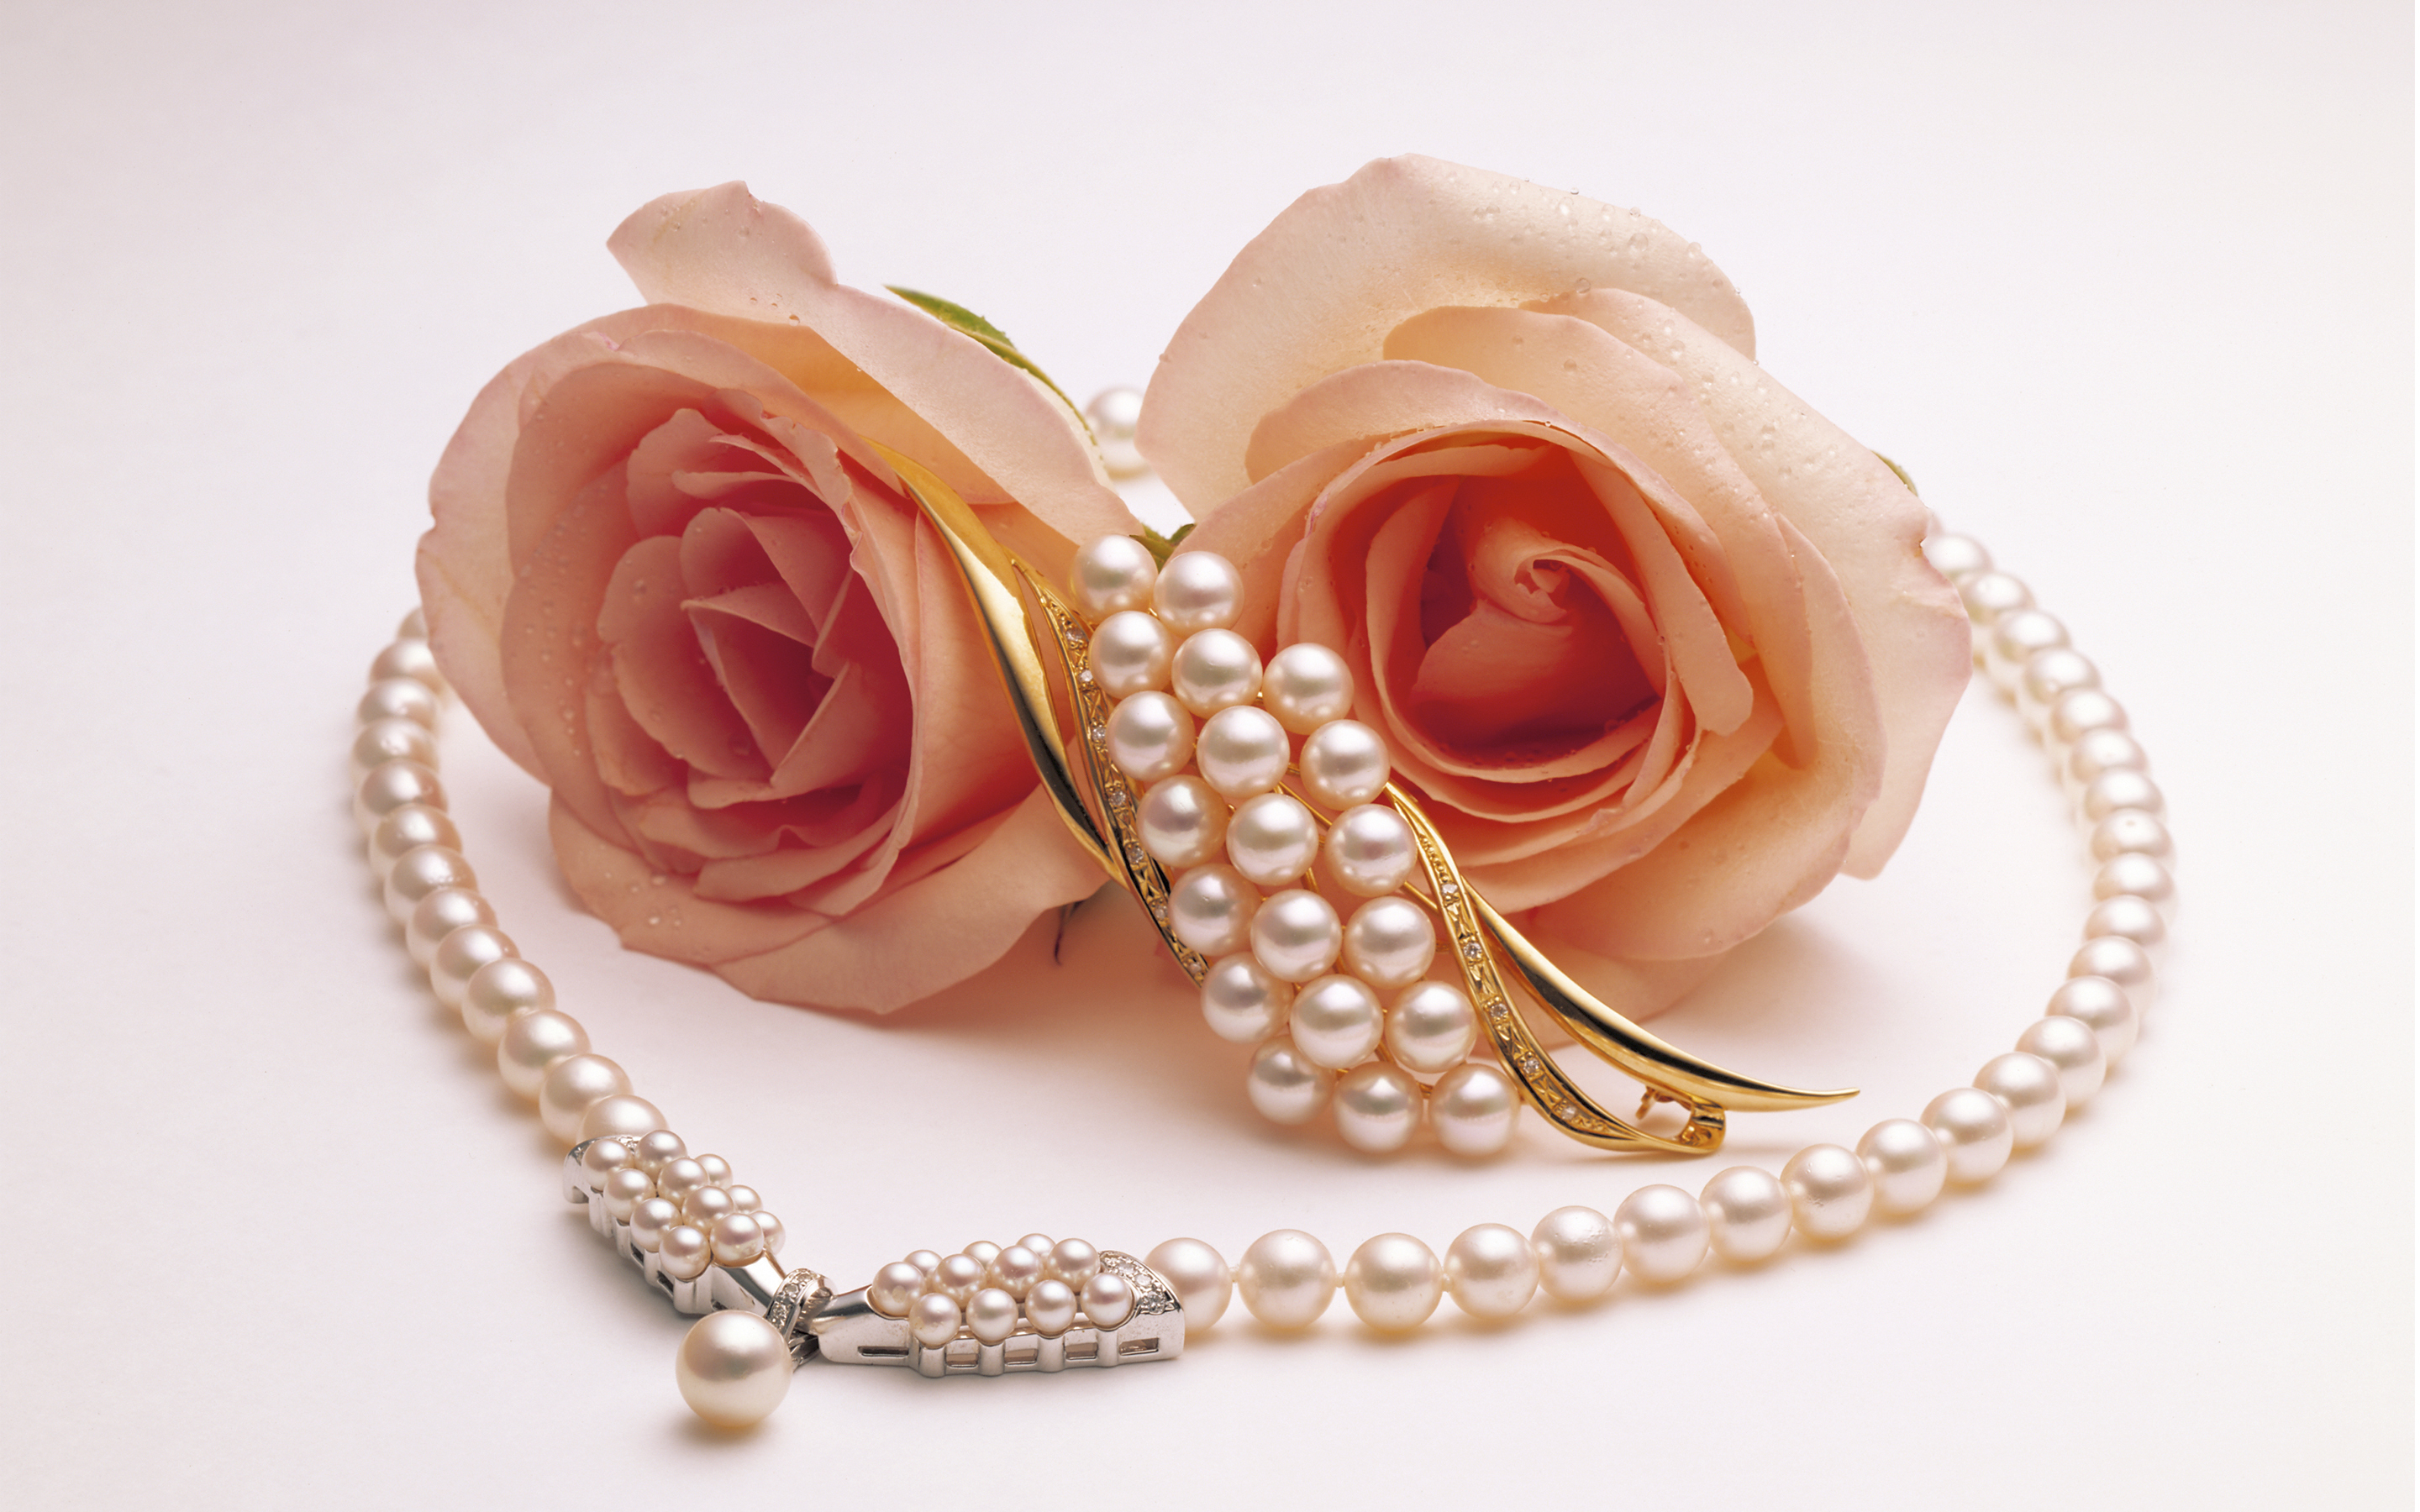 Wallpaper two roses pearls brooches wallpapers flowers   download 2880x1800